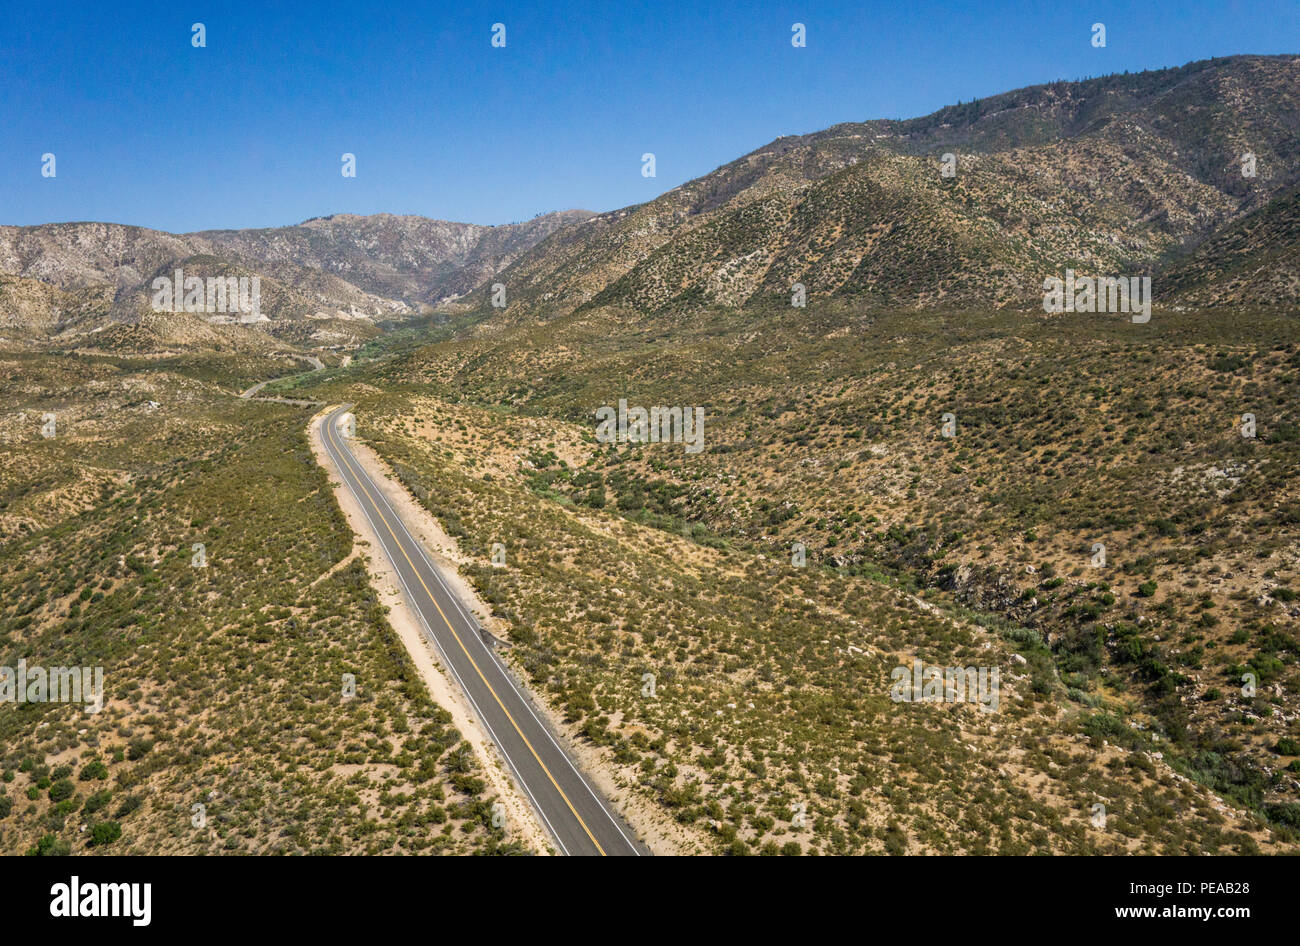 Highway in the Mojave Desert wilderness of southern California near Los Angeles. - Stock Image